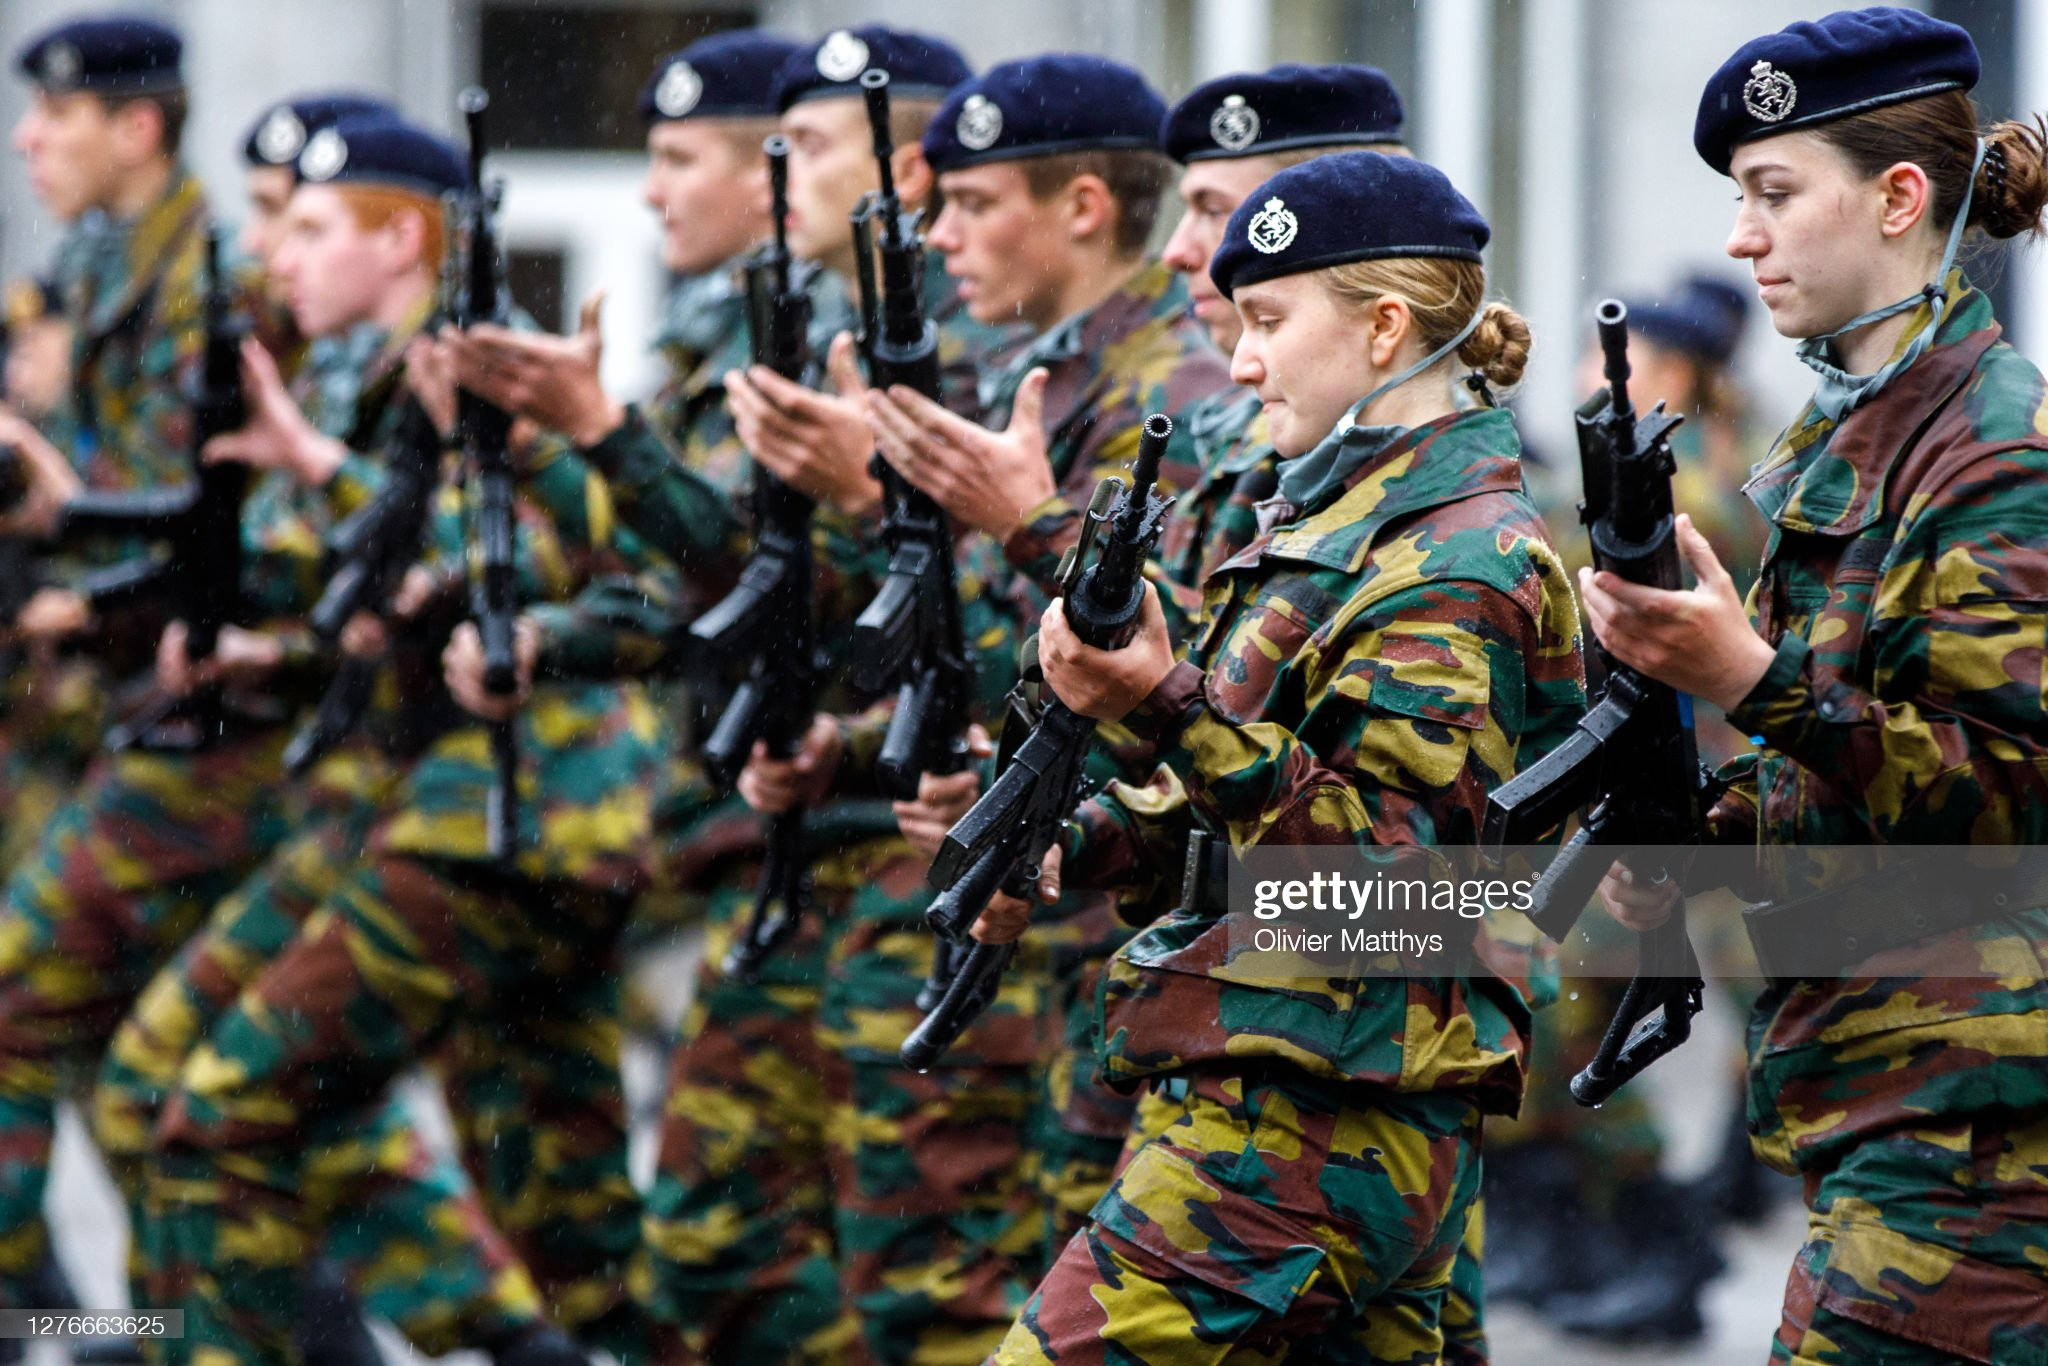 princess-elisabeth-of-belgium-and-her-platoon-salute-and-present-arms-picture-id1276663625